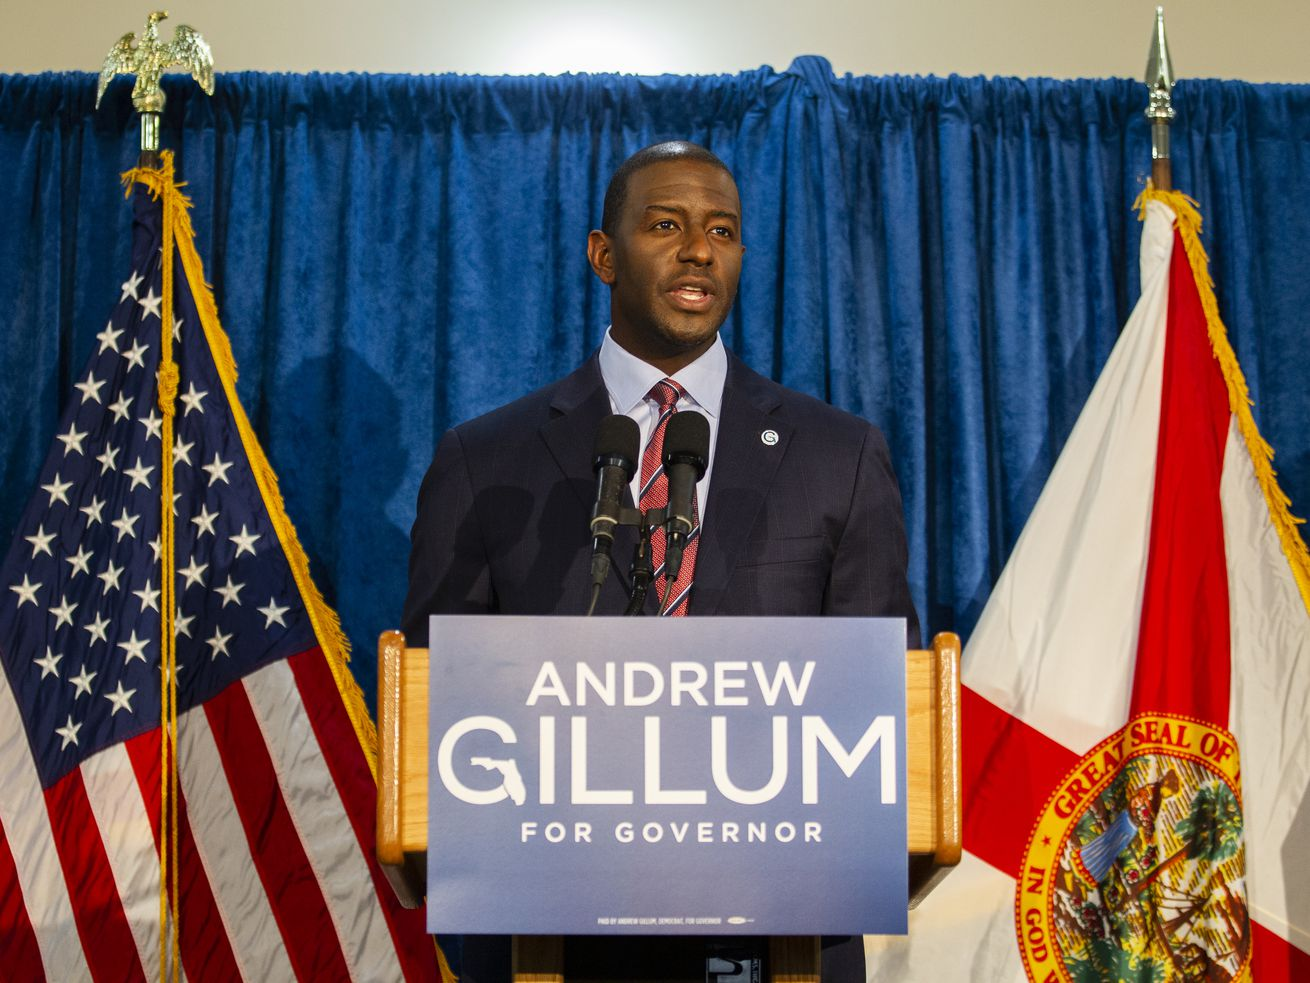 Florida gubernatorial candidate Andrew Gillum held a press conference in Tallahassee, Florida, one week before conceding the race.